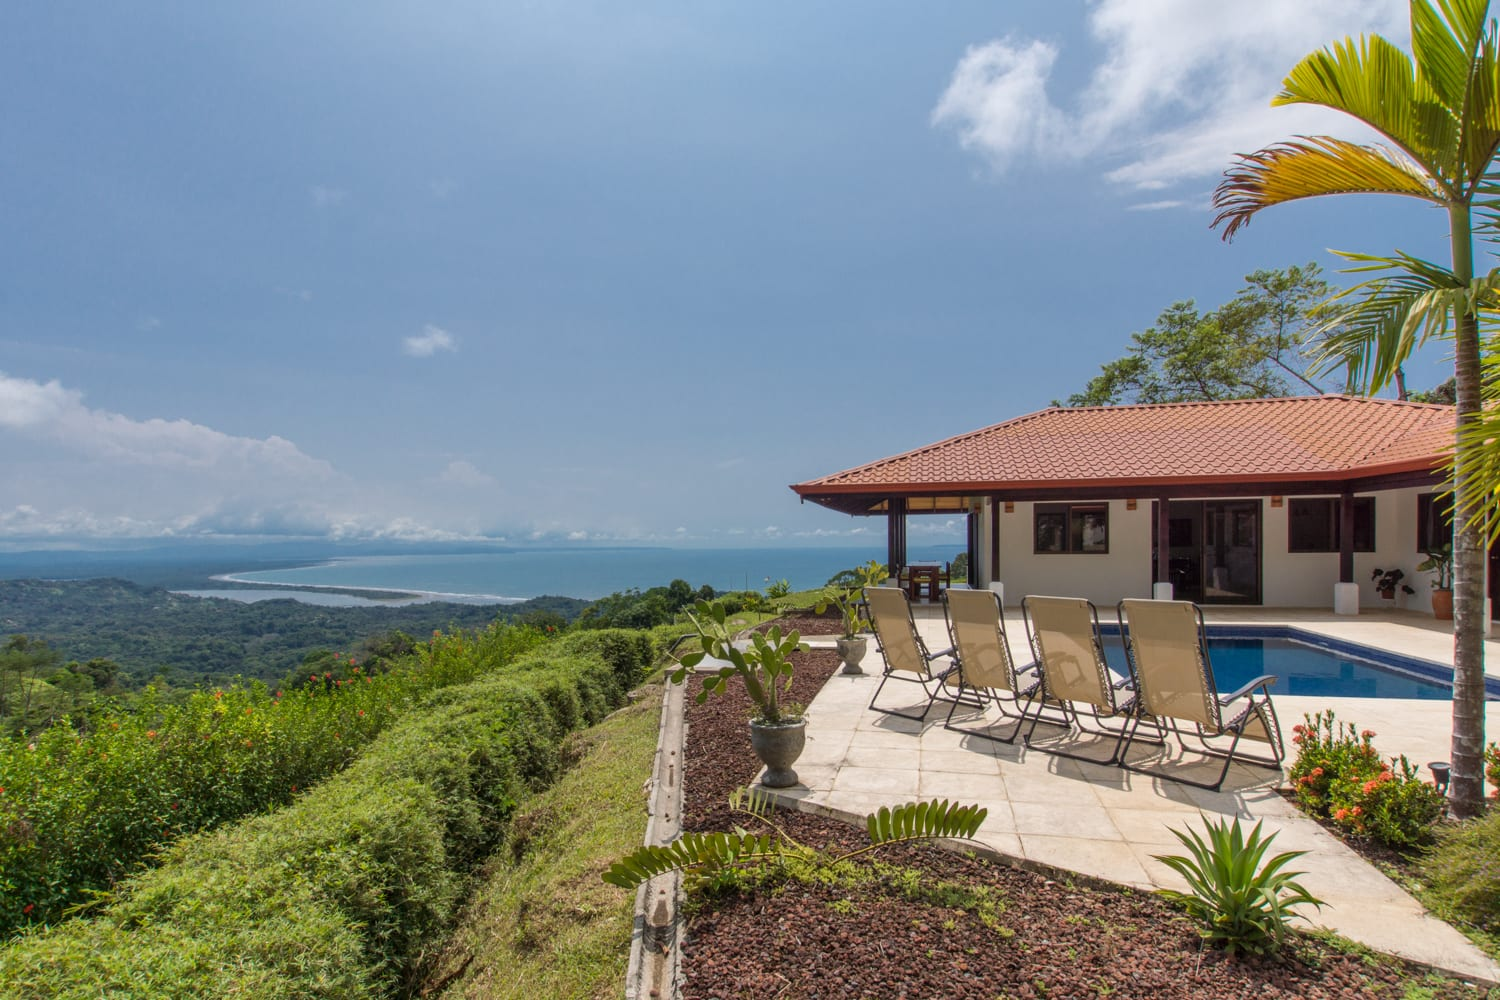 0.21 ACRES - 3 Bedroom Modern Spanish Hacienda With Pool And Spectacular Ocean Views!!!